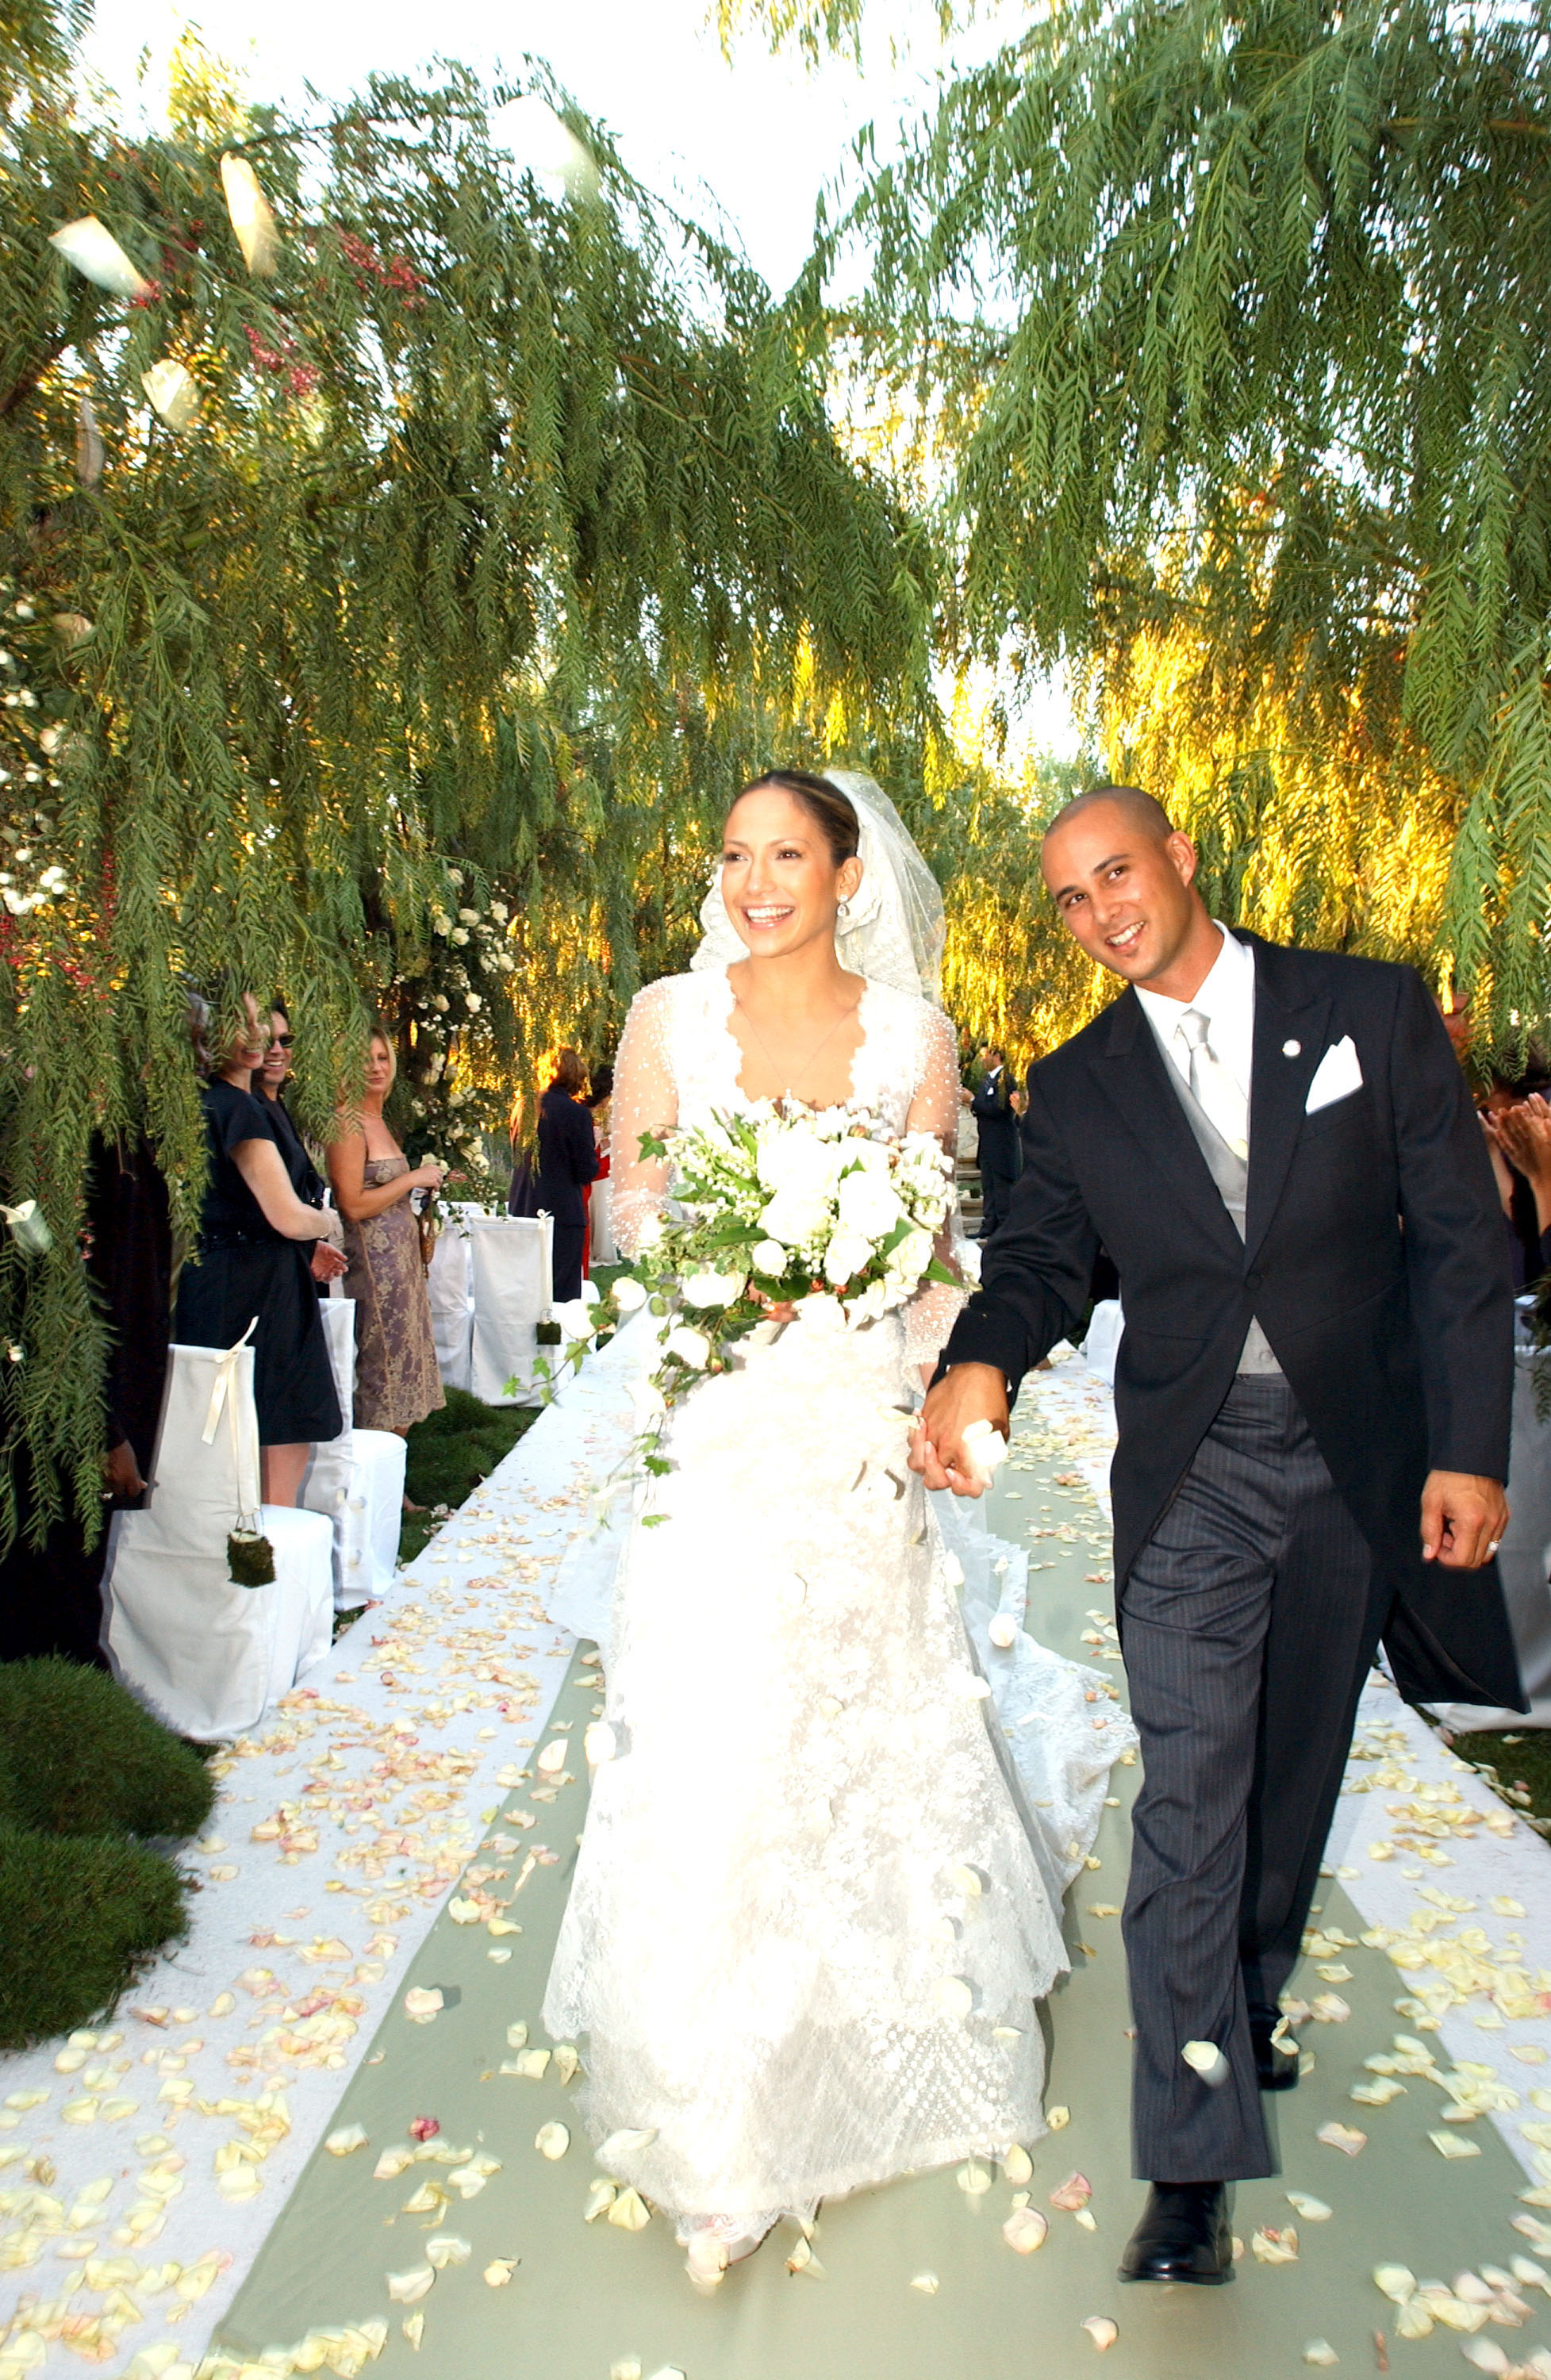 """Hollywoods shortest marriages - They wed in September 2001 and called it quits in January 2002. """"His love is what I need most of all,"""" the singer said just a few weeks before their marriage ended."""